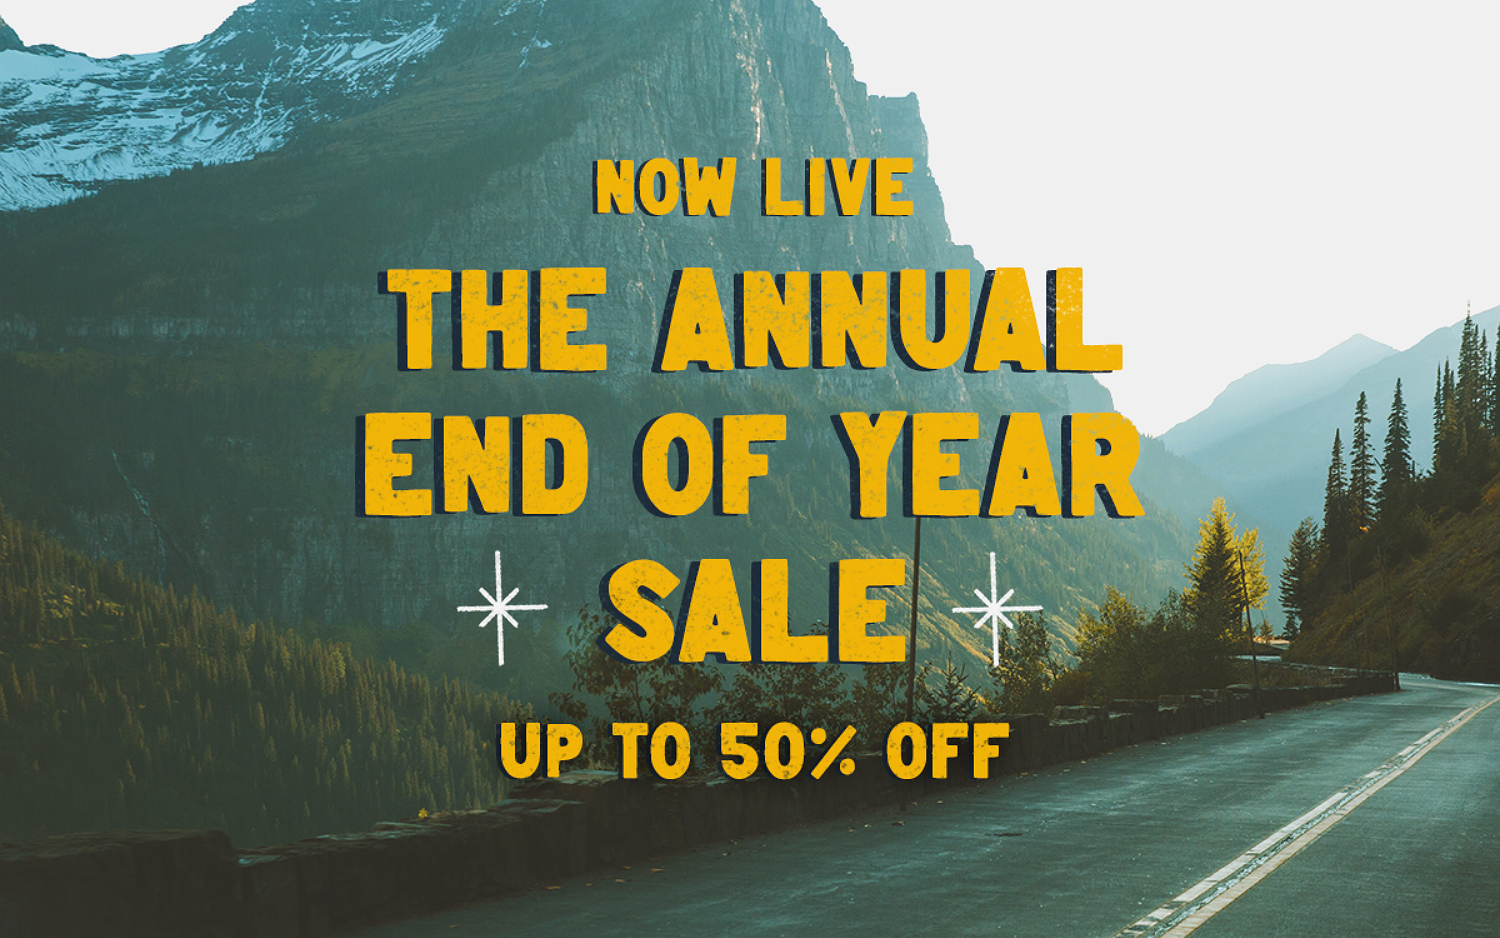 Huckberry Year-End Clearance